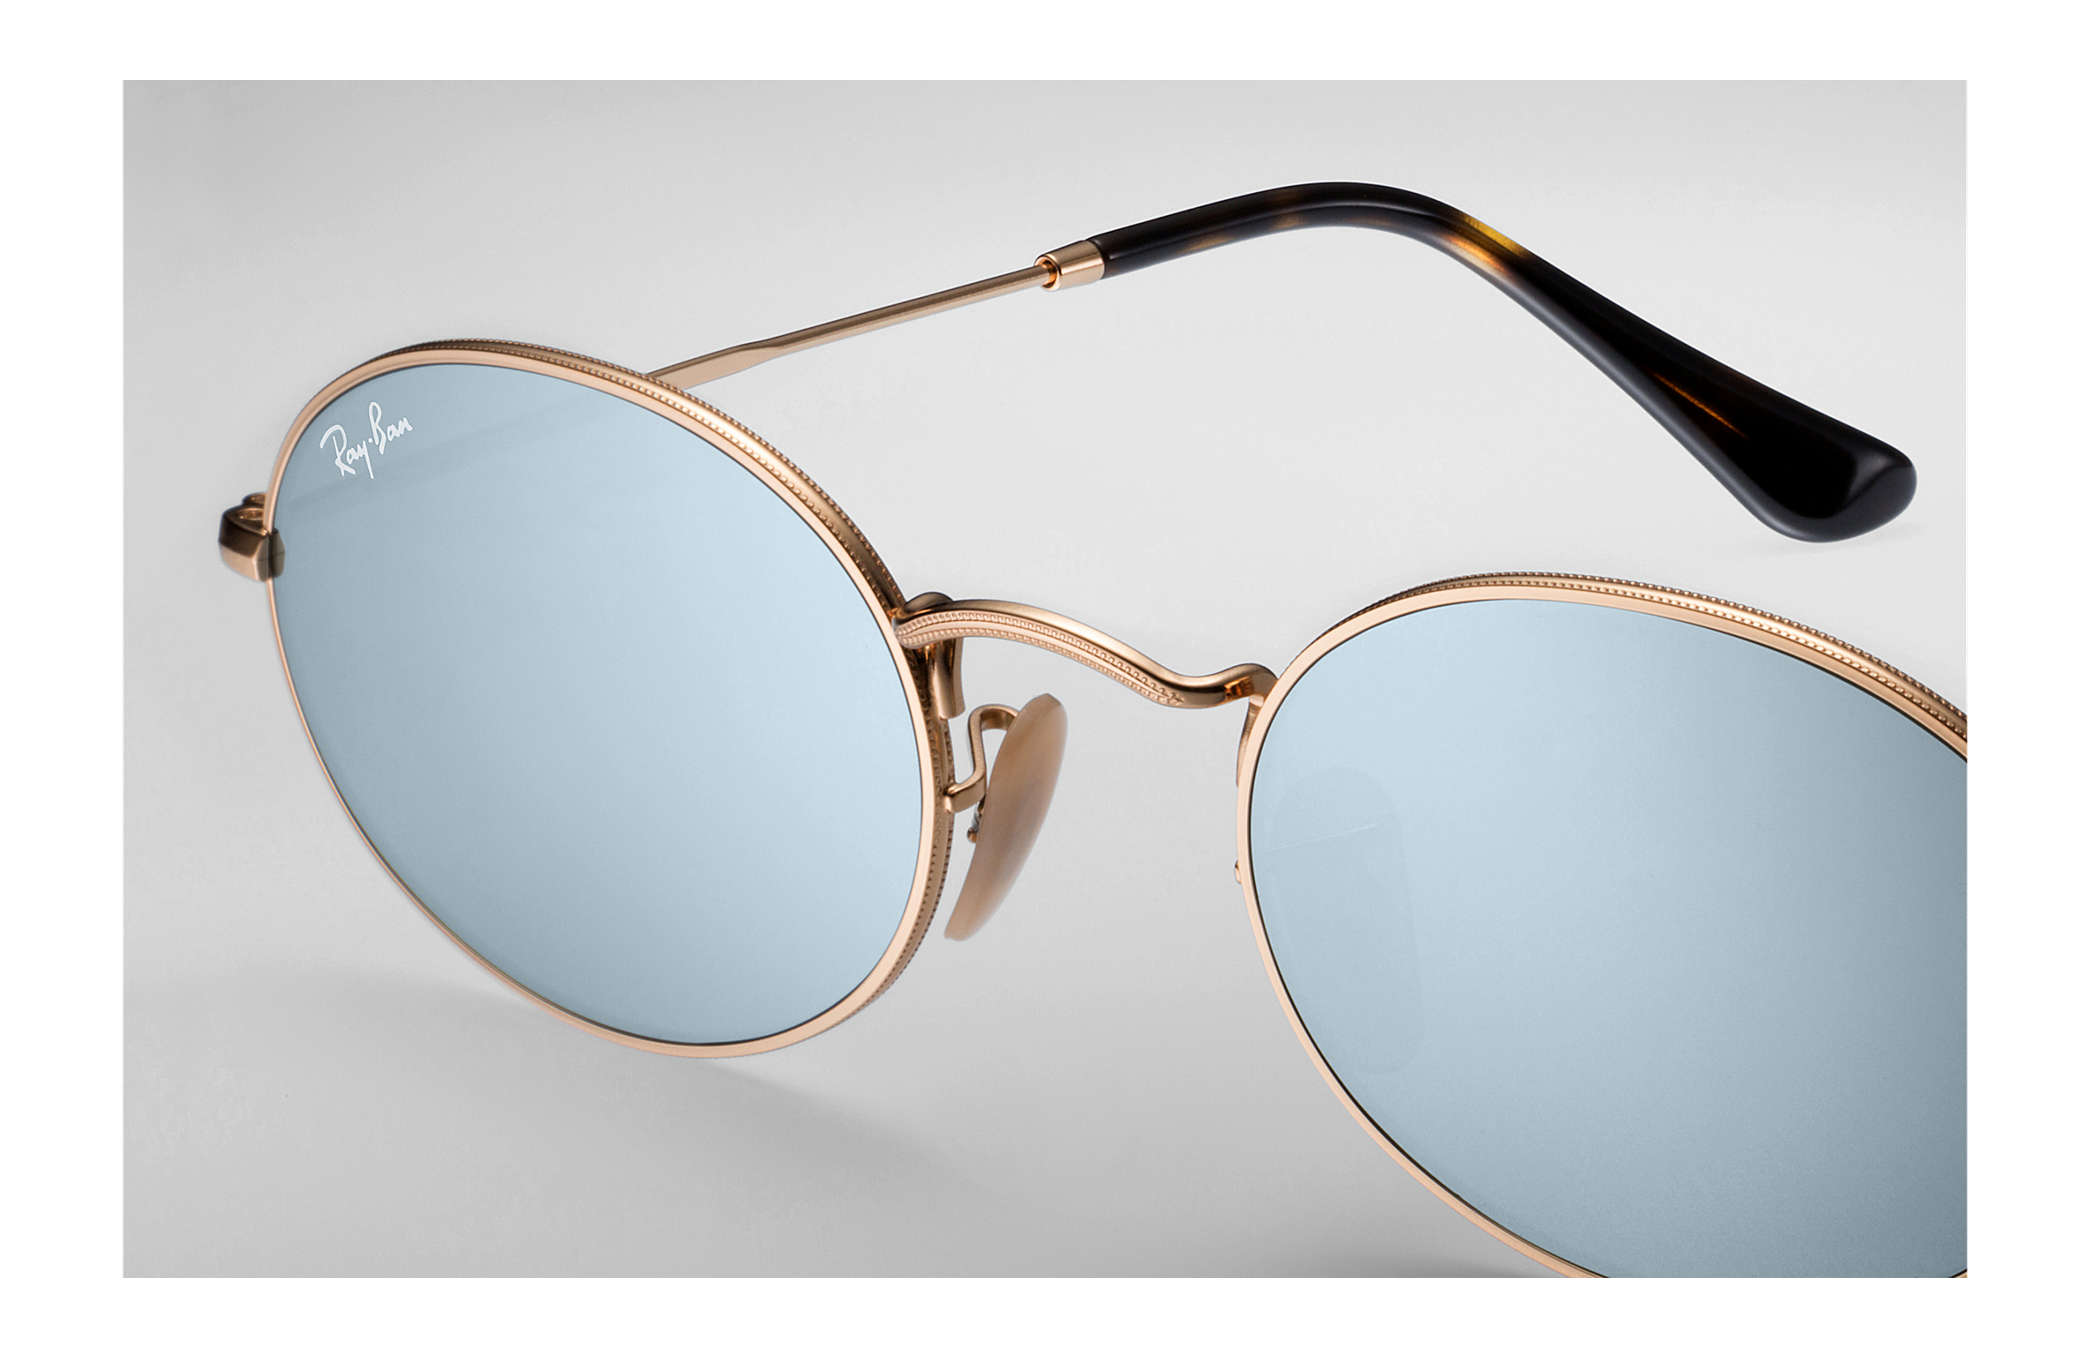 32ff6d233be1d Ray-Ban Oval Flat Lenses RB3547N Gold - Metal - Silver Lenses ...